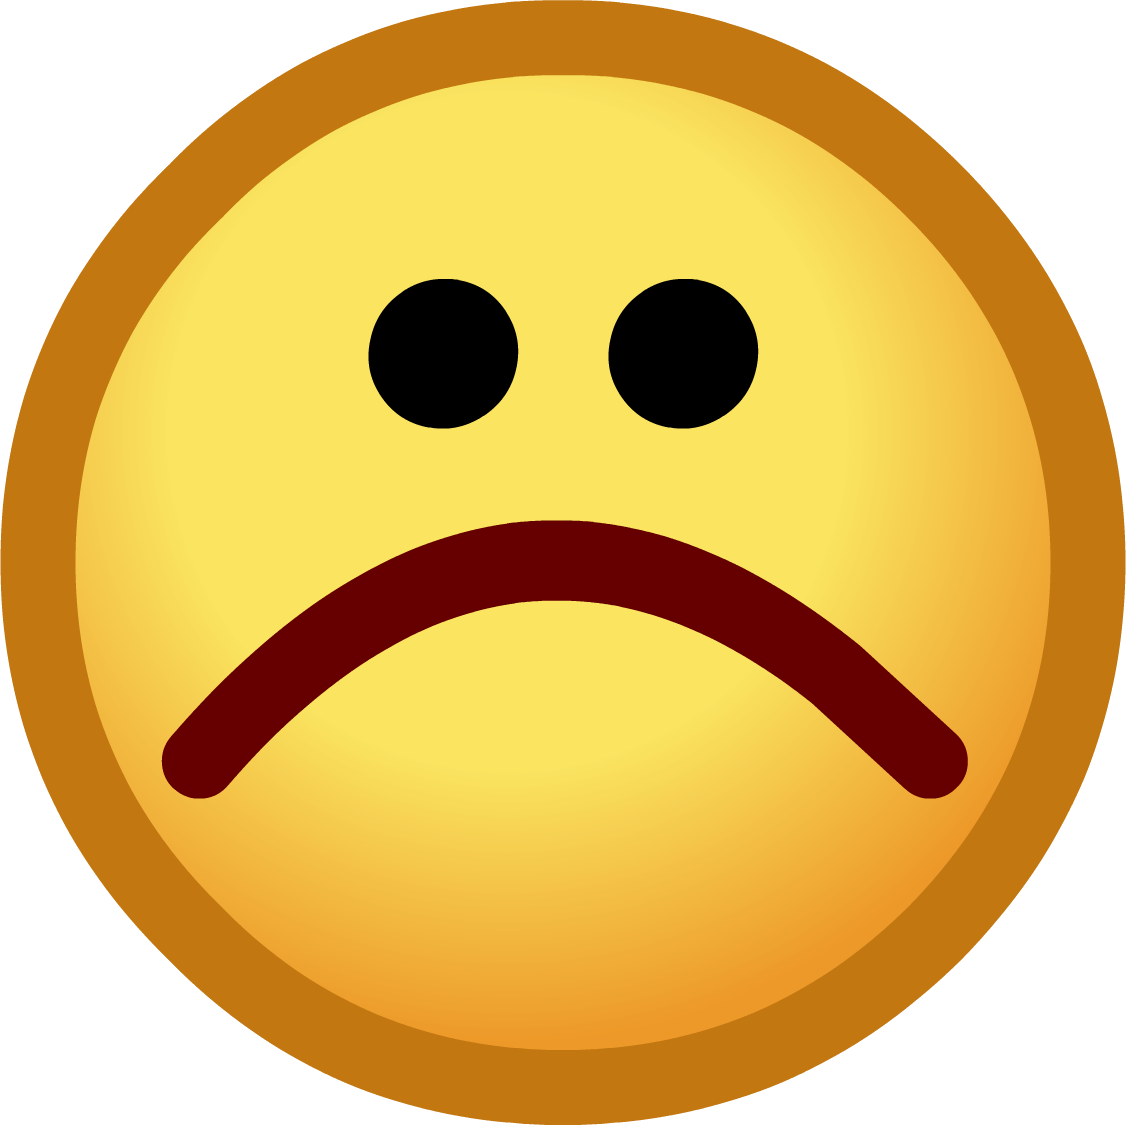 Image - Sad Emoticon.png - Club Penguin Wiki - The free, editable ...